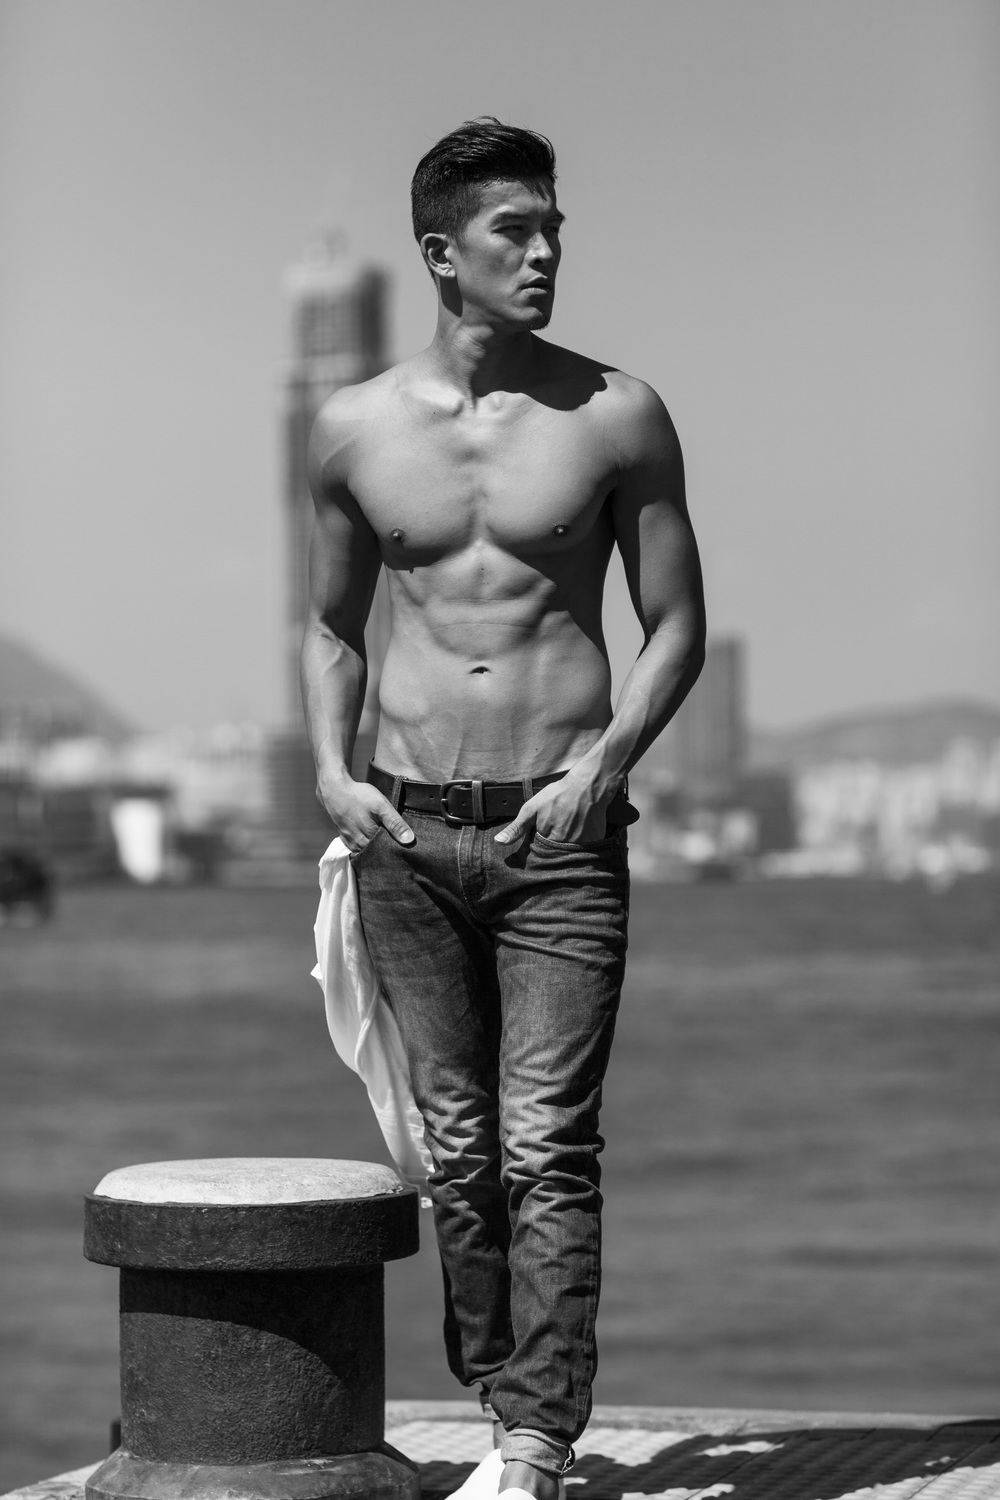 Andy Cheung by Brian HK Chan for Rhea Magazine